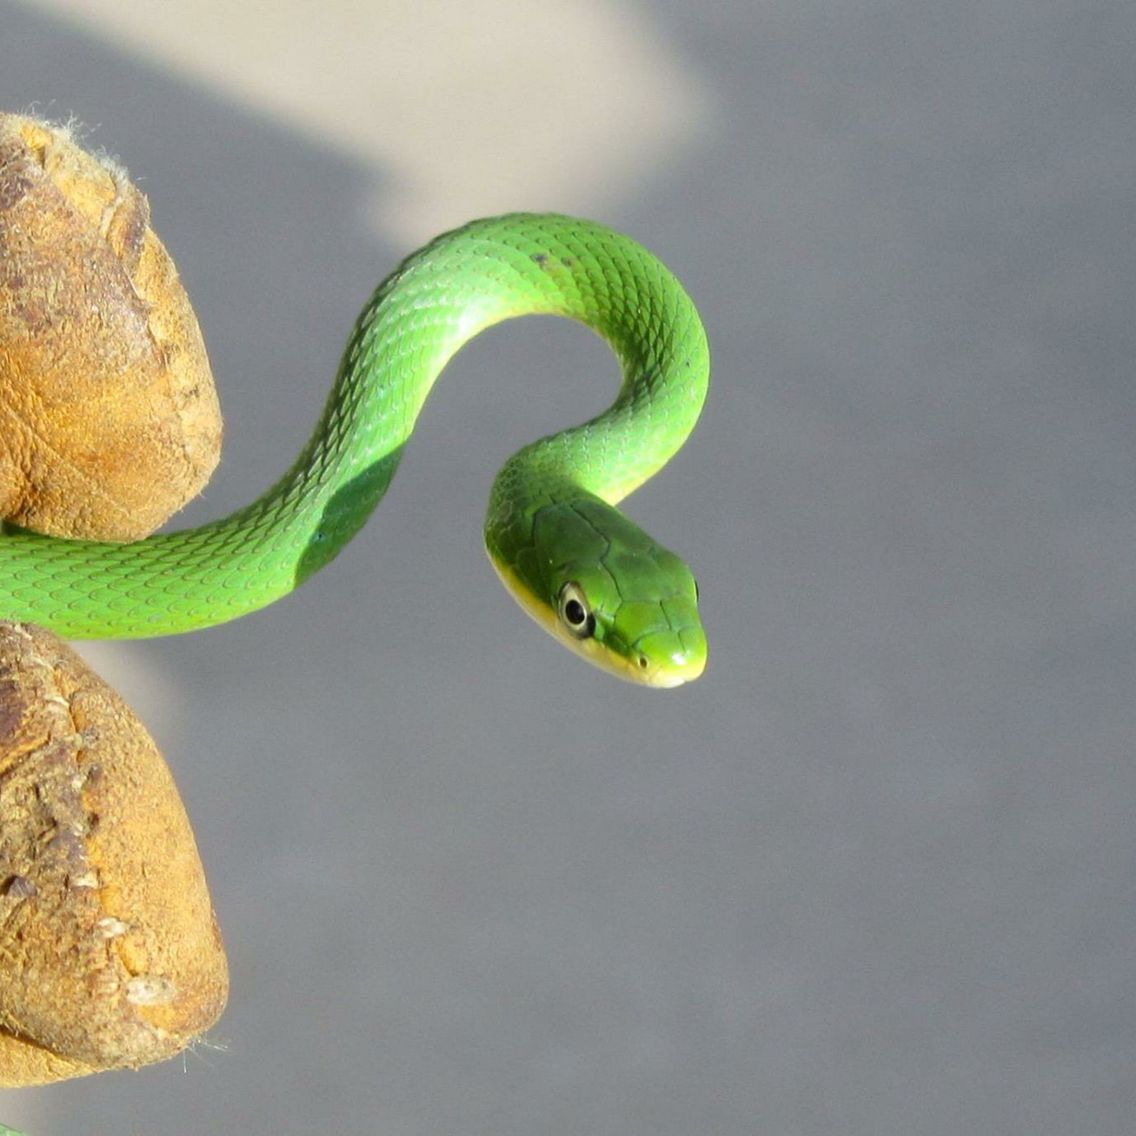 The Rough Green Snake Is Docile Often Allowing Close Approach By Humans And Seldom Bites Reptiles And Amphibians Snake Green Snake